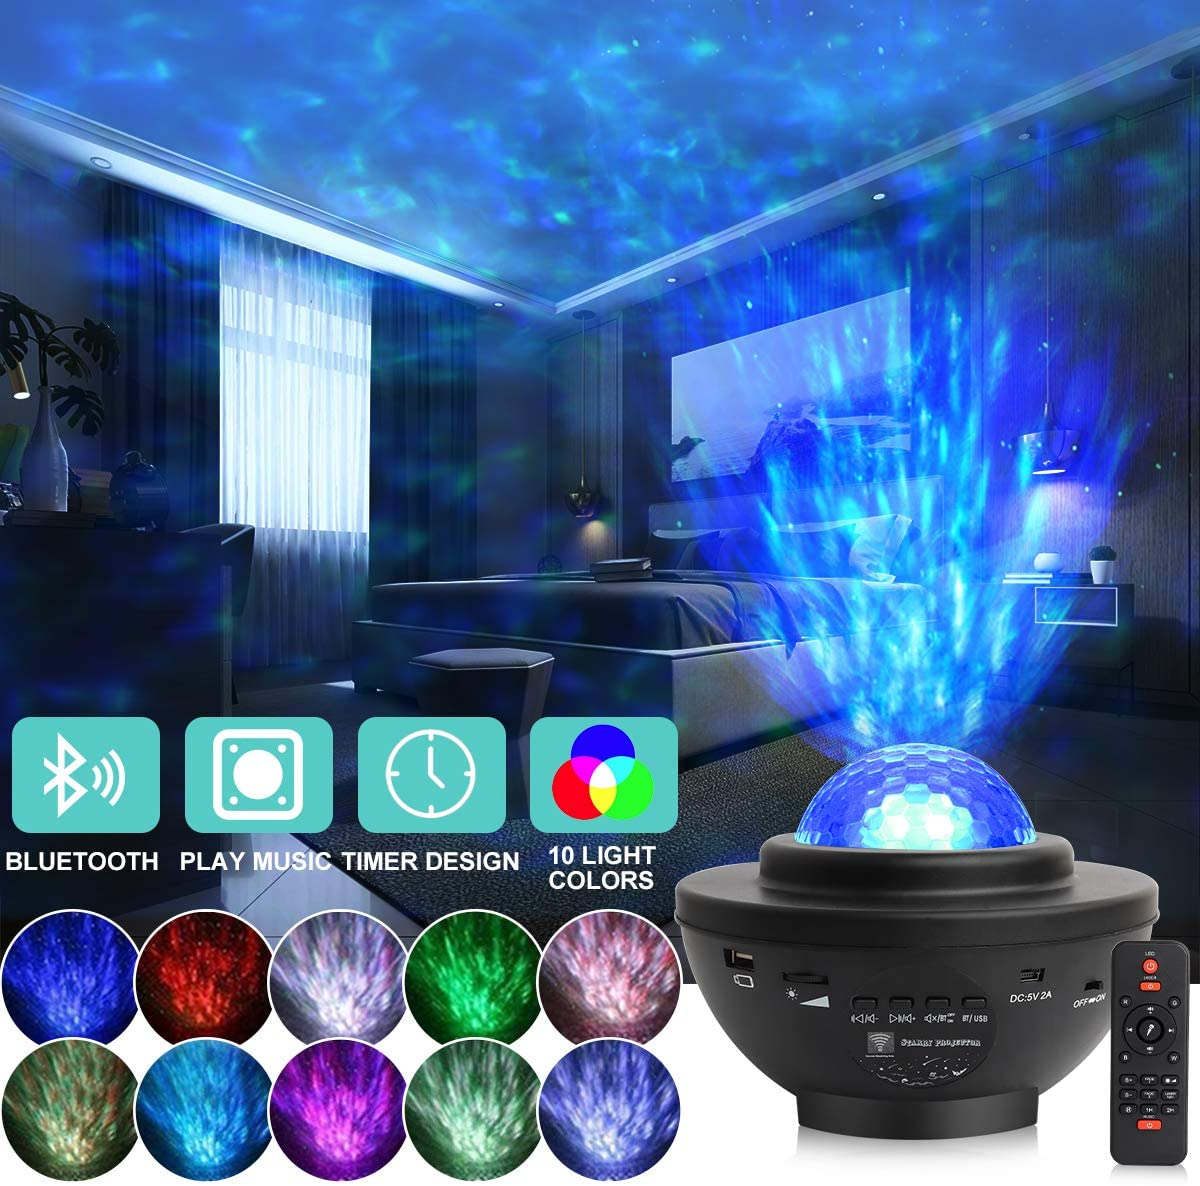 Star Projector, Starry Galaxy Night Light Projector for Bedroom Ocean Wave Star Night Light Projector with Bluetooth Music Speaker & Voice Control 10 Color Sky Light Projector for Kids Adults